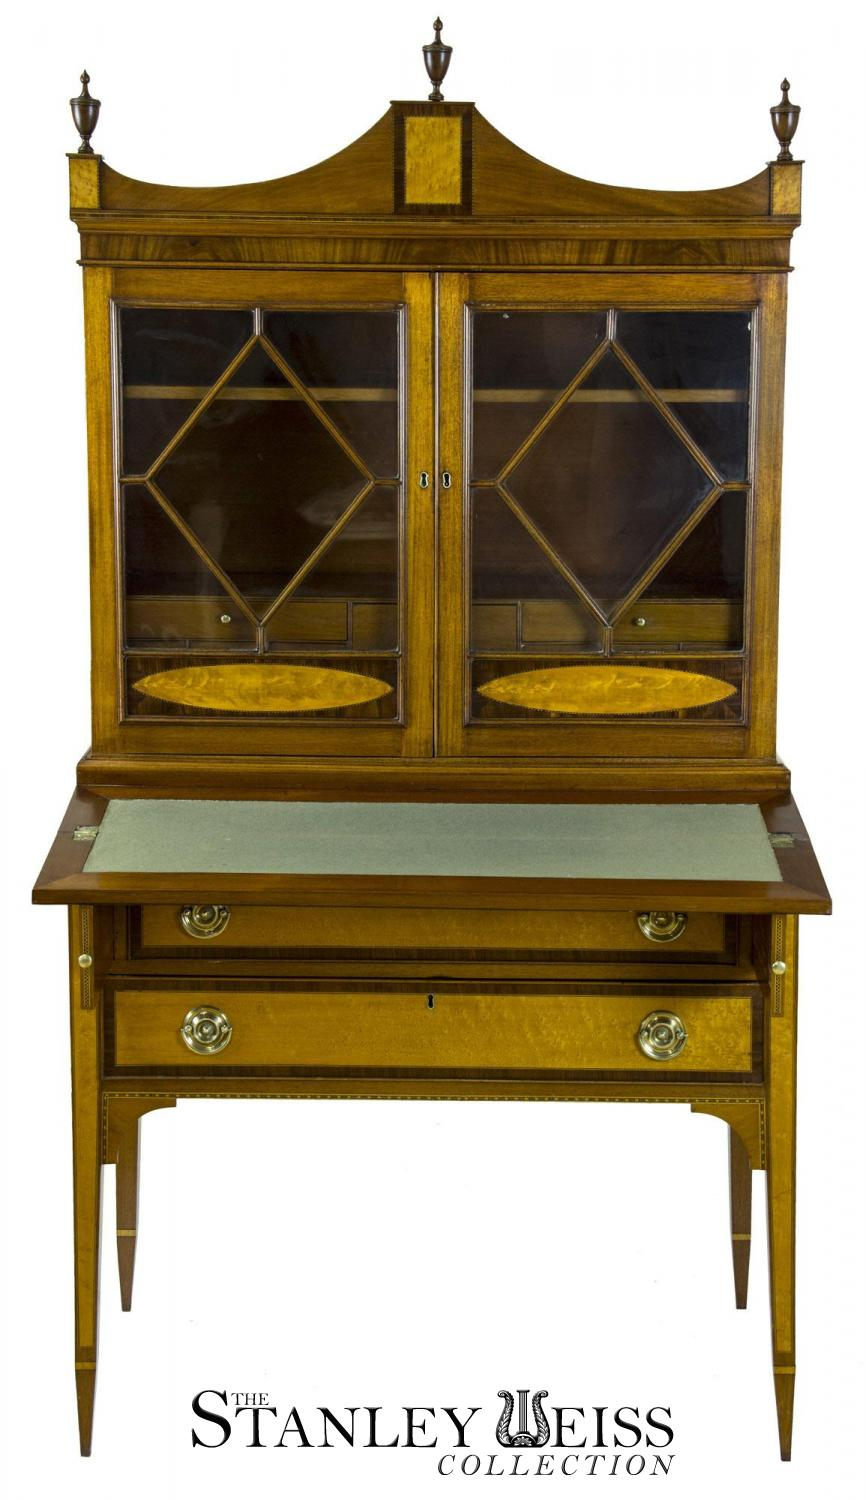 Enjoyable A Fine Federal Hepplewhite Inlaid Secretary Desk And Download Free Architecture Designs Pushbritishbridgeorg